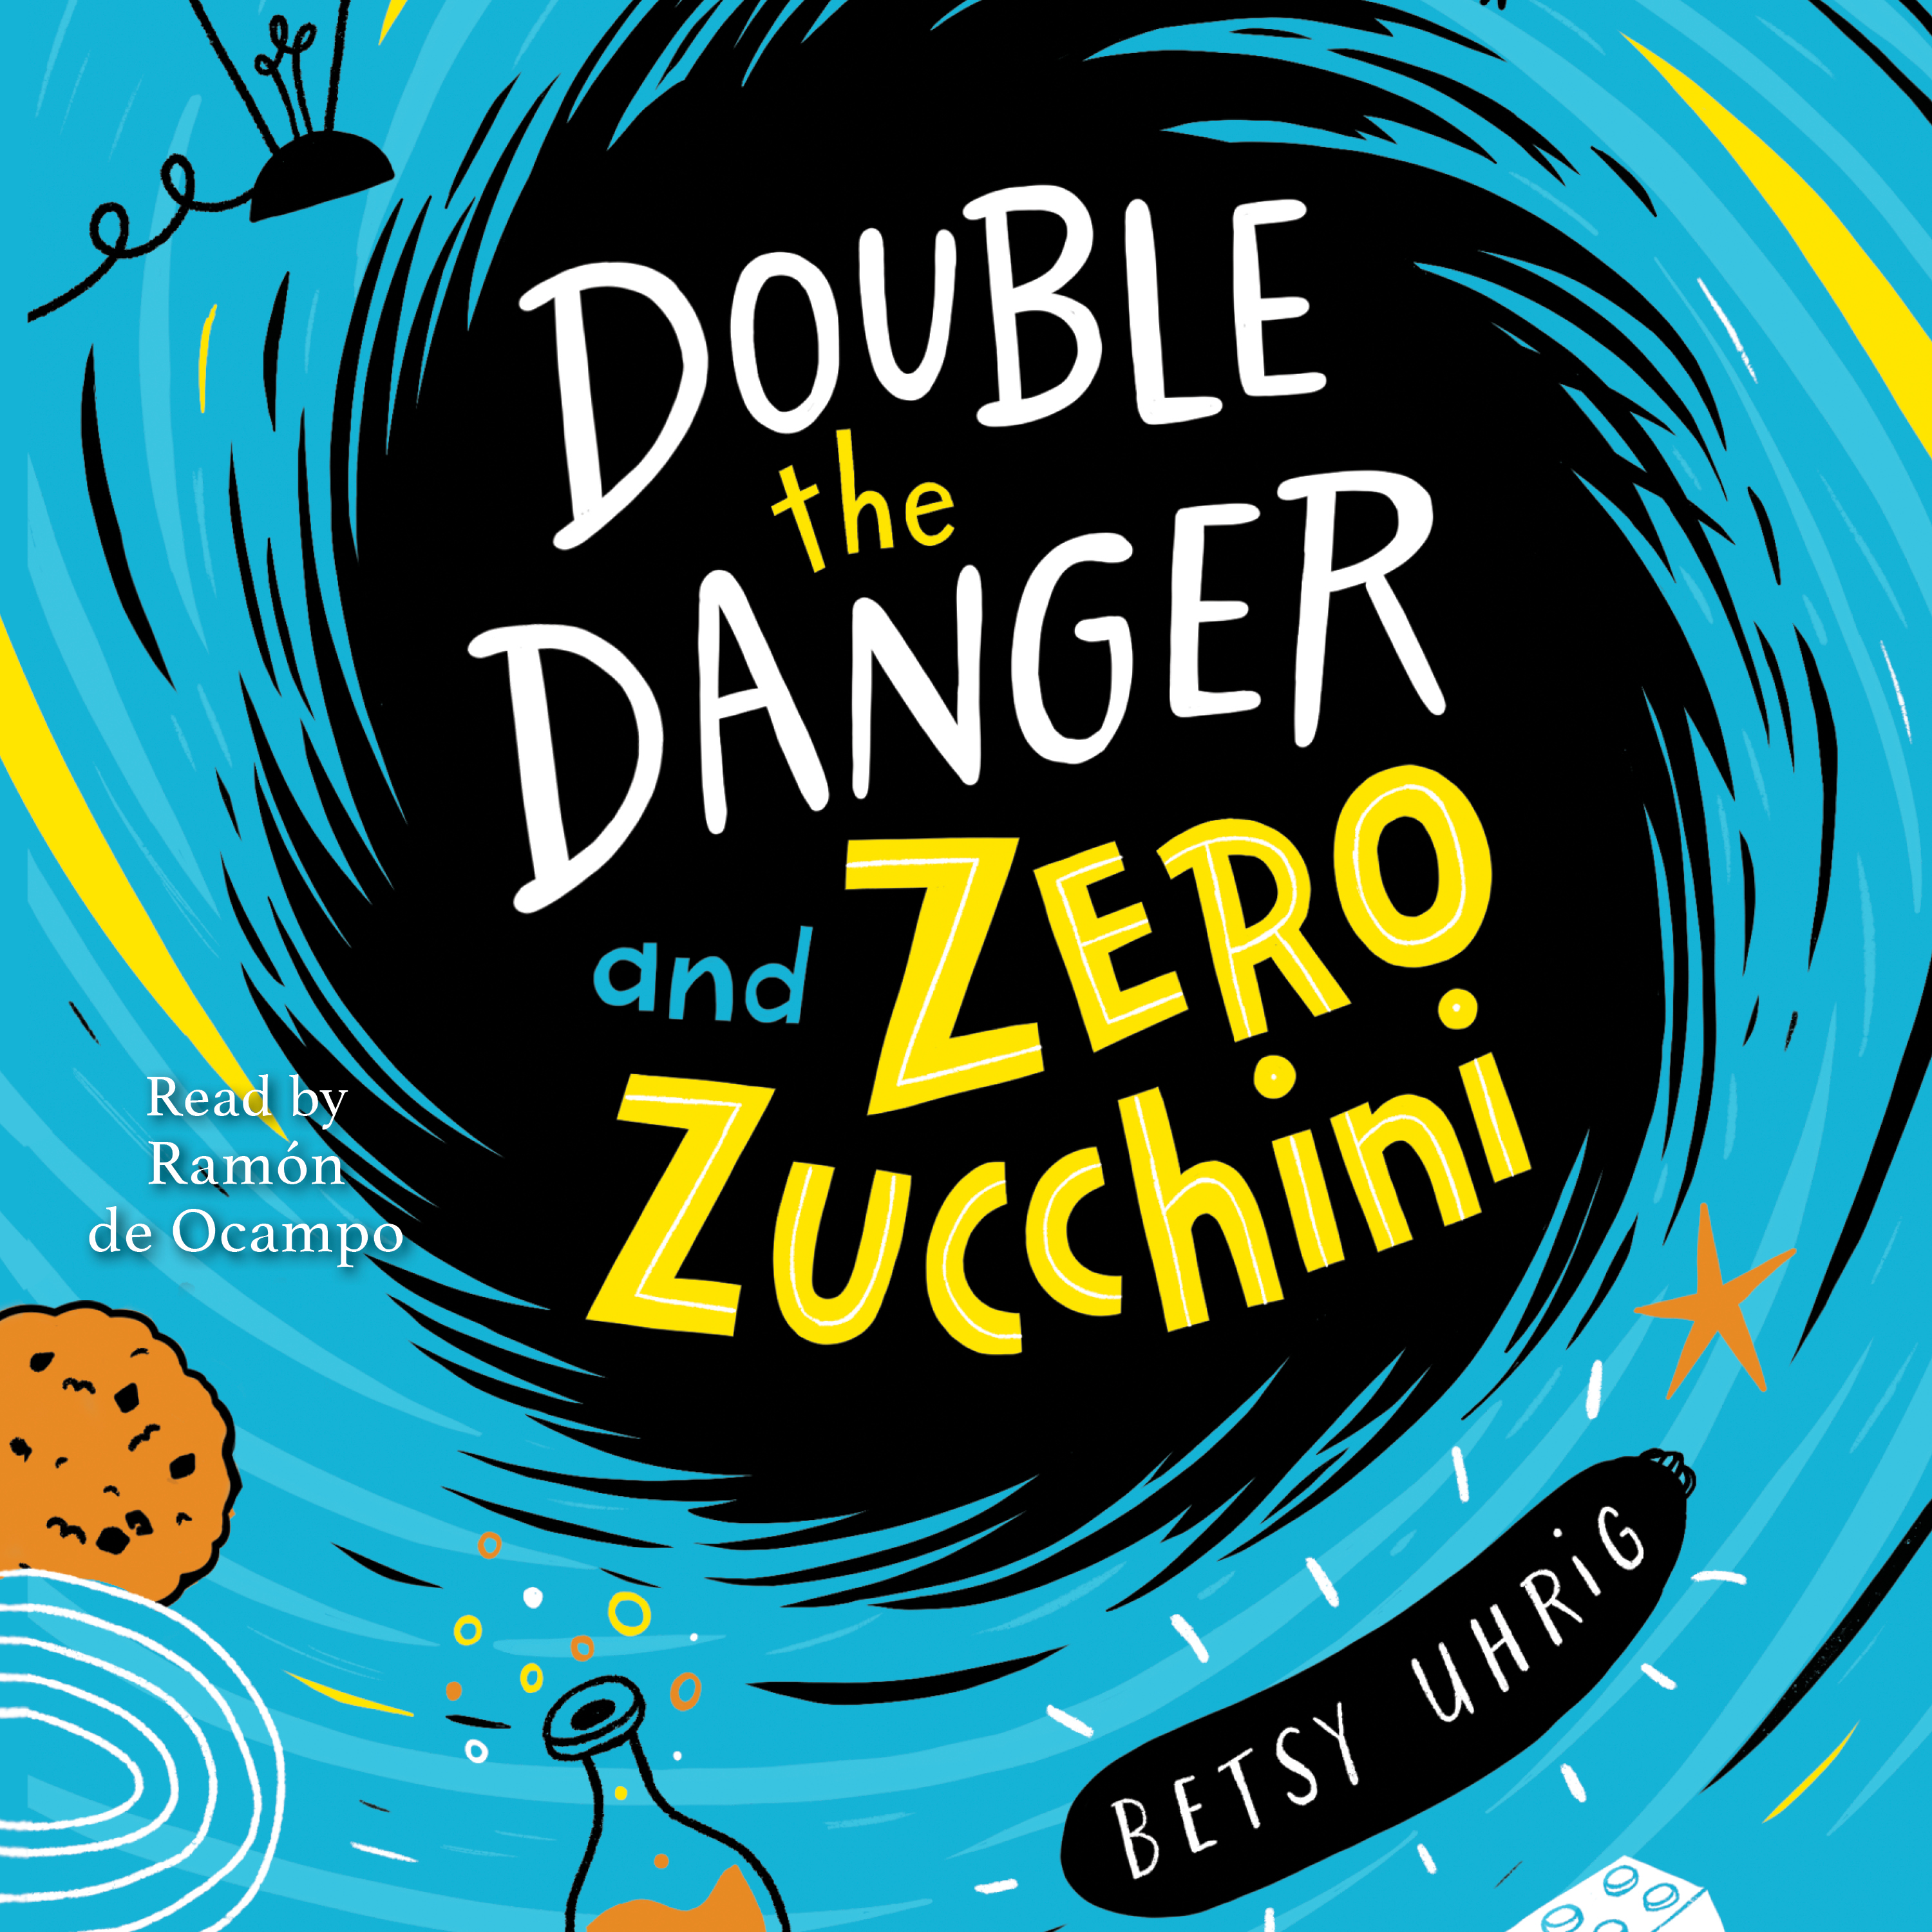 Double the Danger and Zero Zucchini